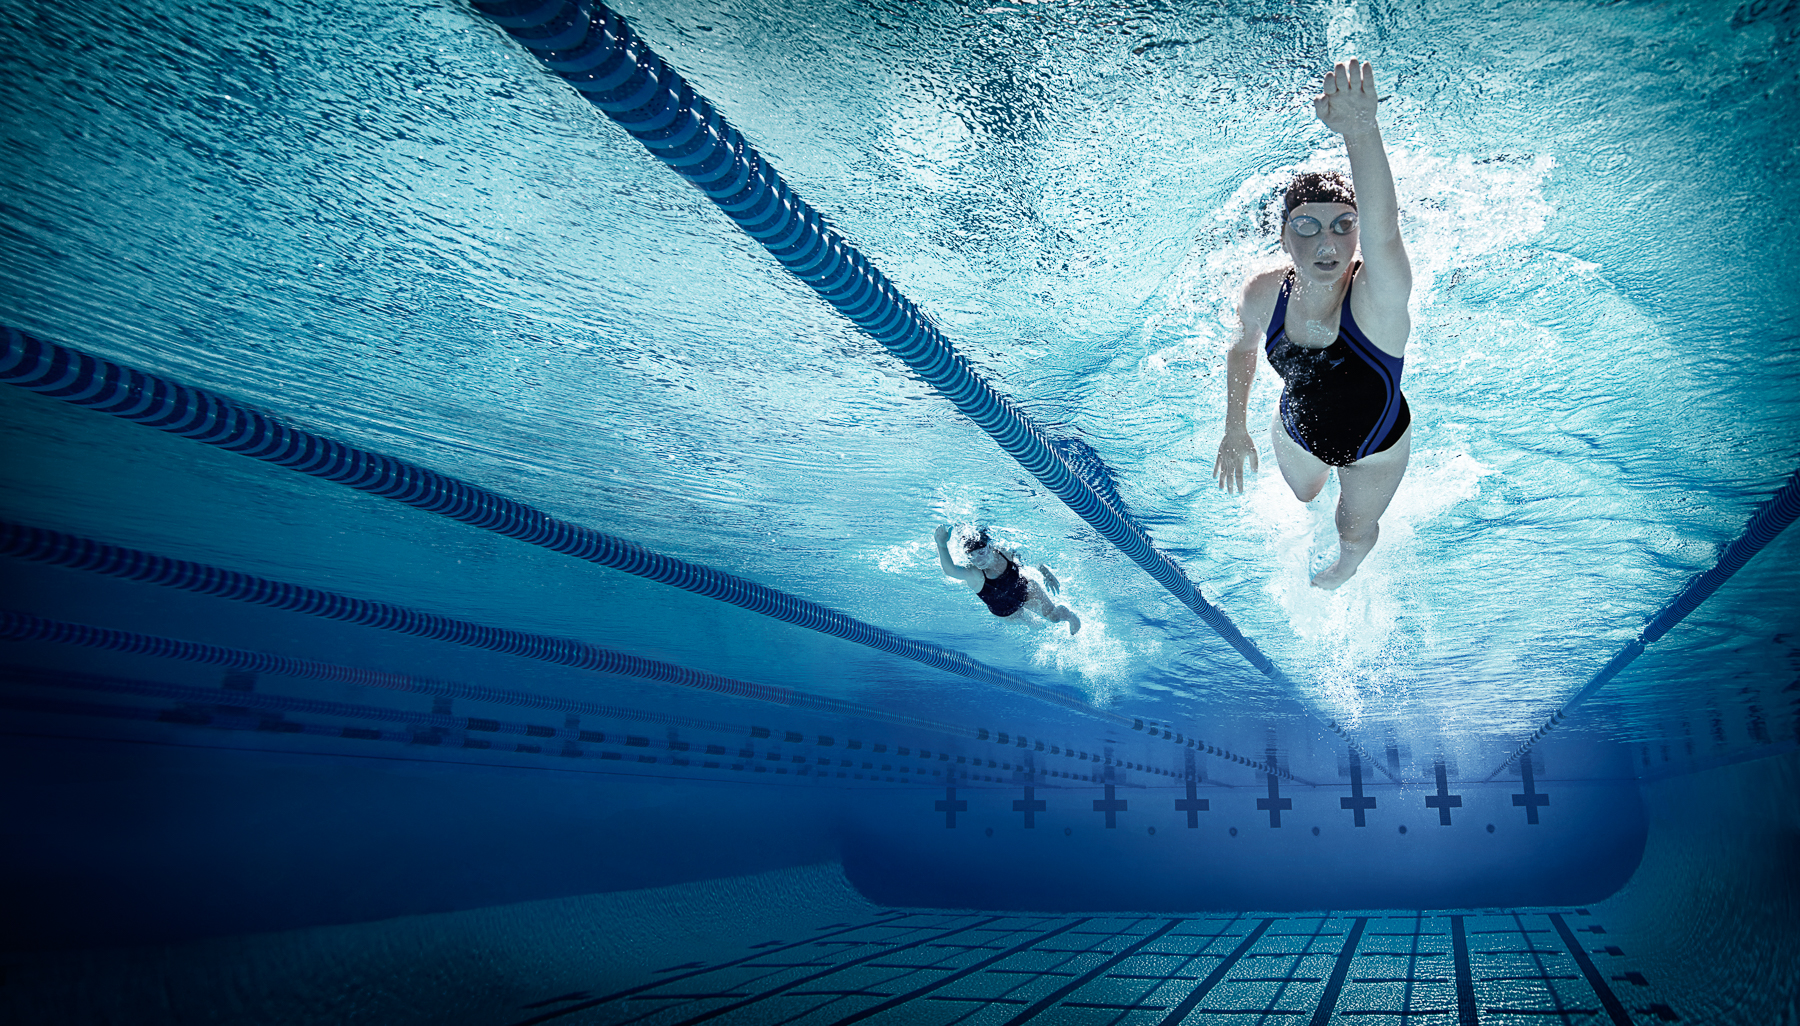 Underwater Shot of Two Swimmers in a Pool